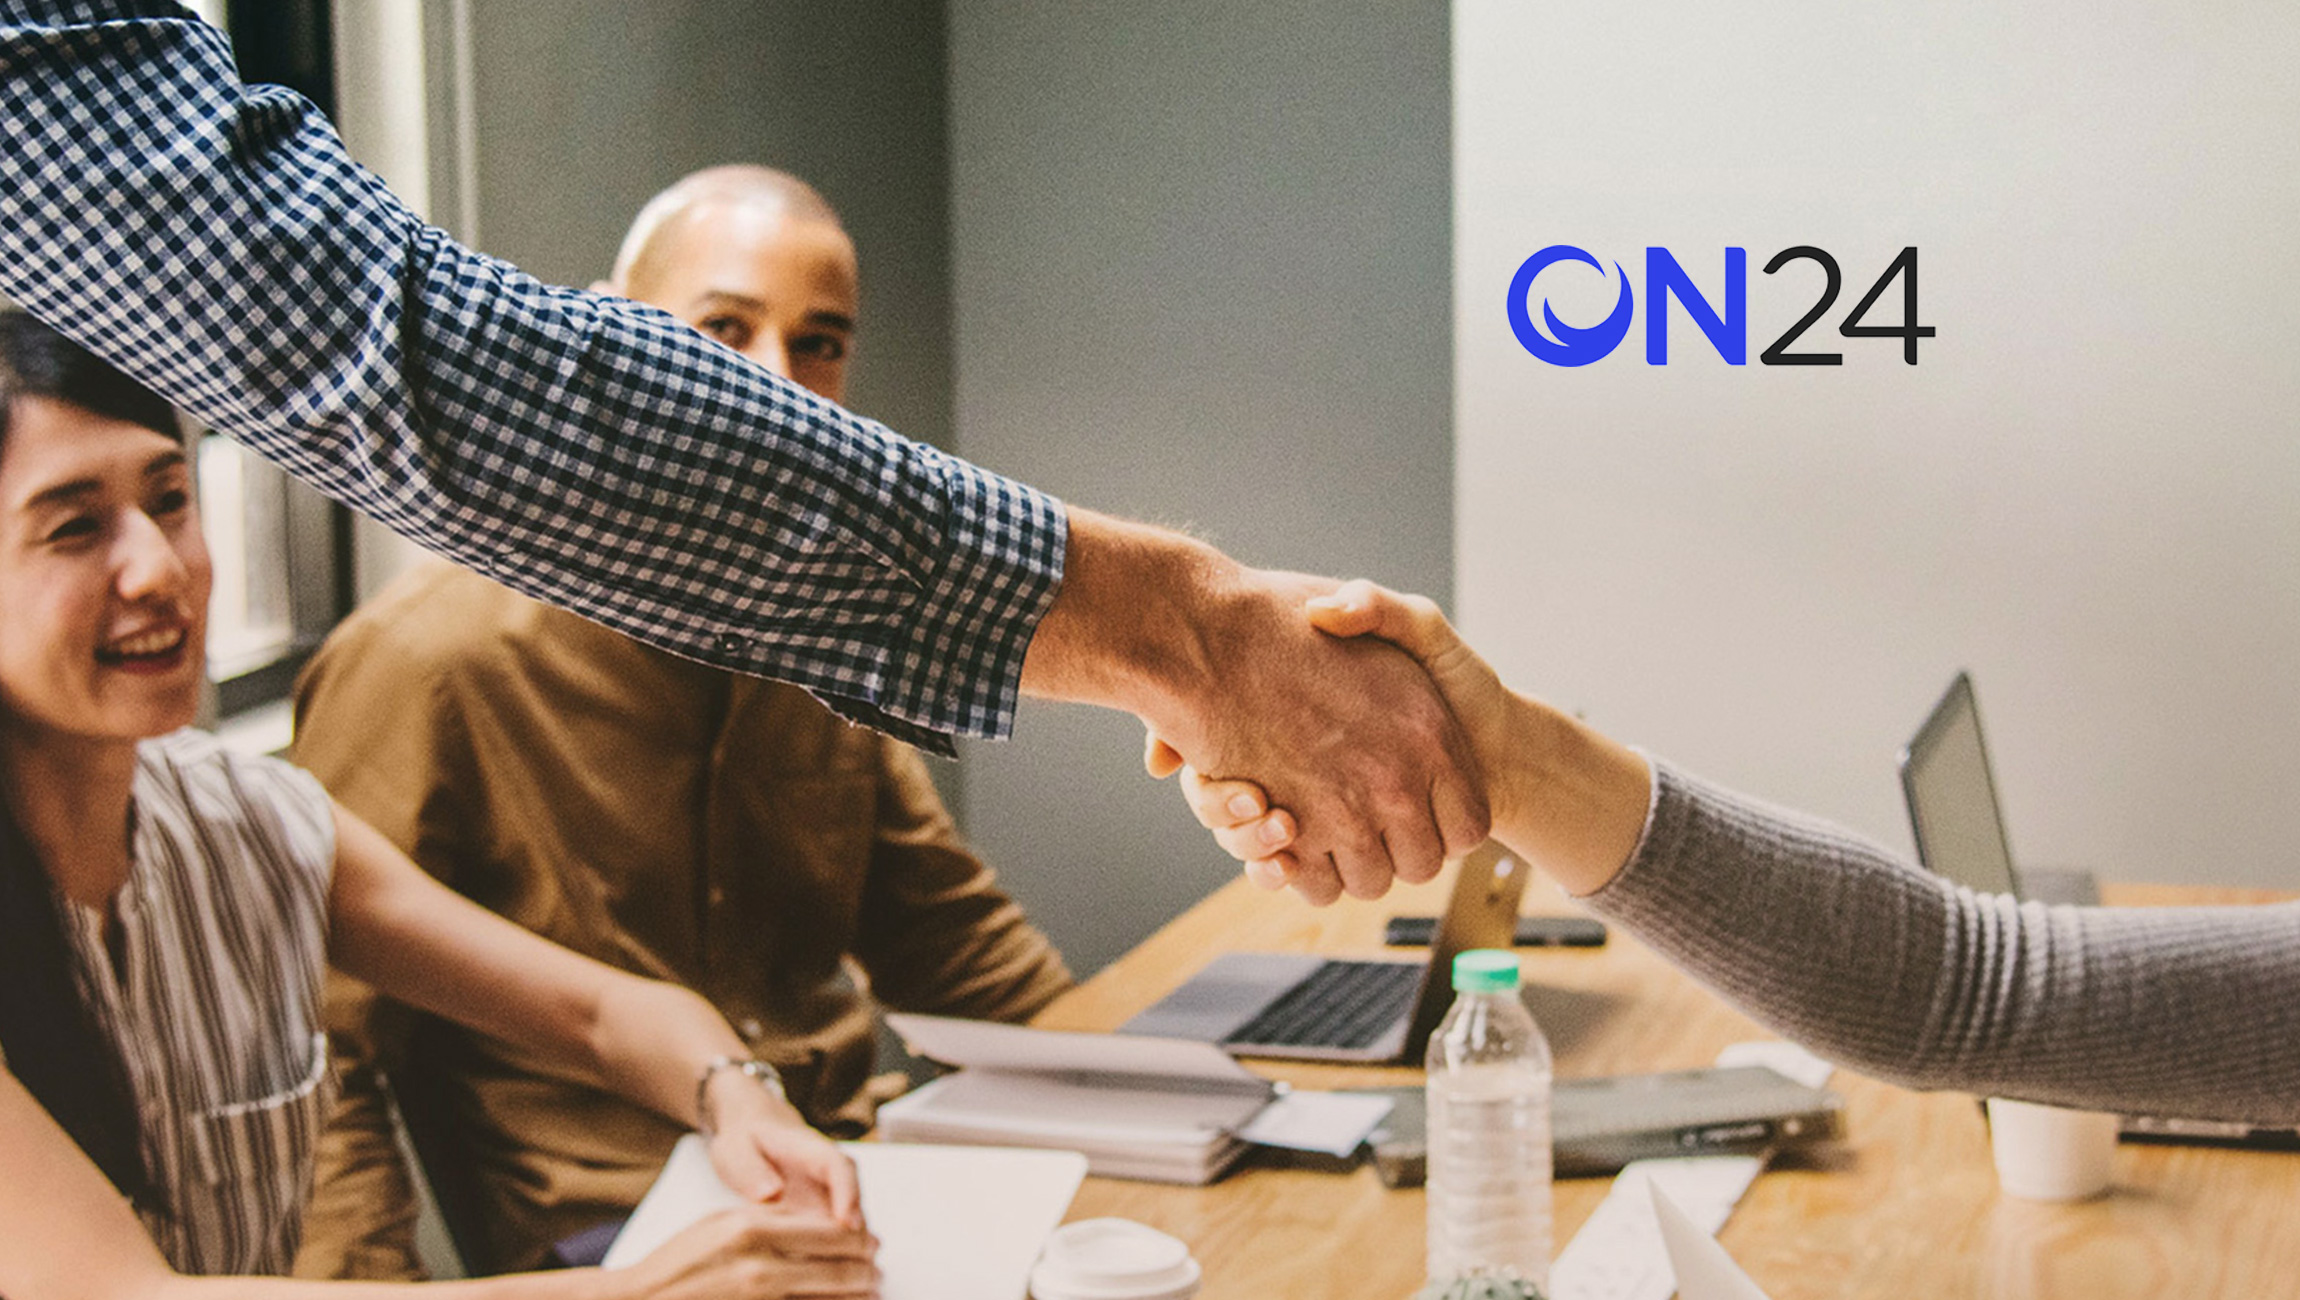 Marketo and ON24 Partnership Empowers Marketers to Turn Engagement into Revenue